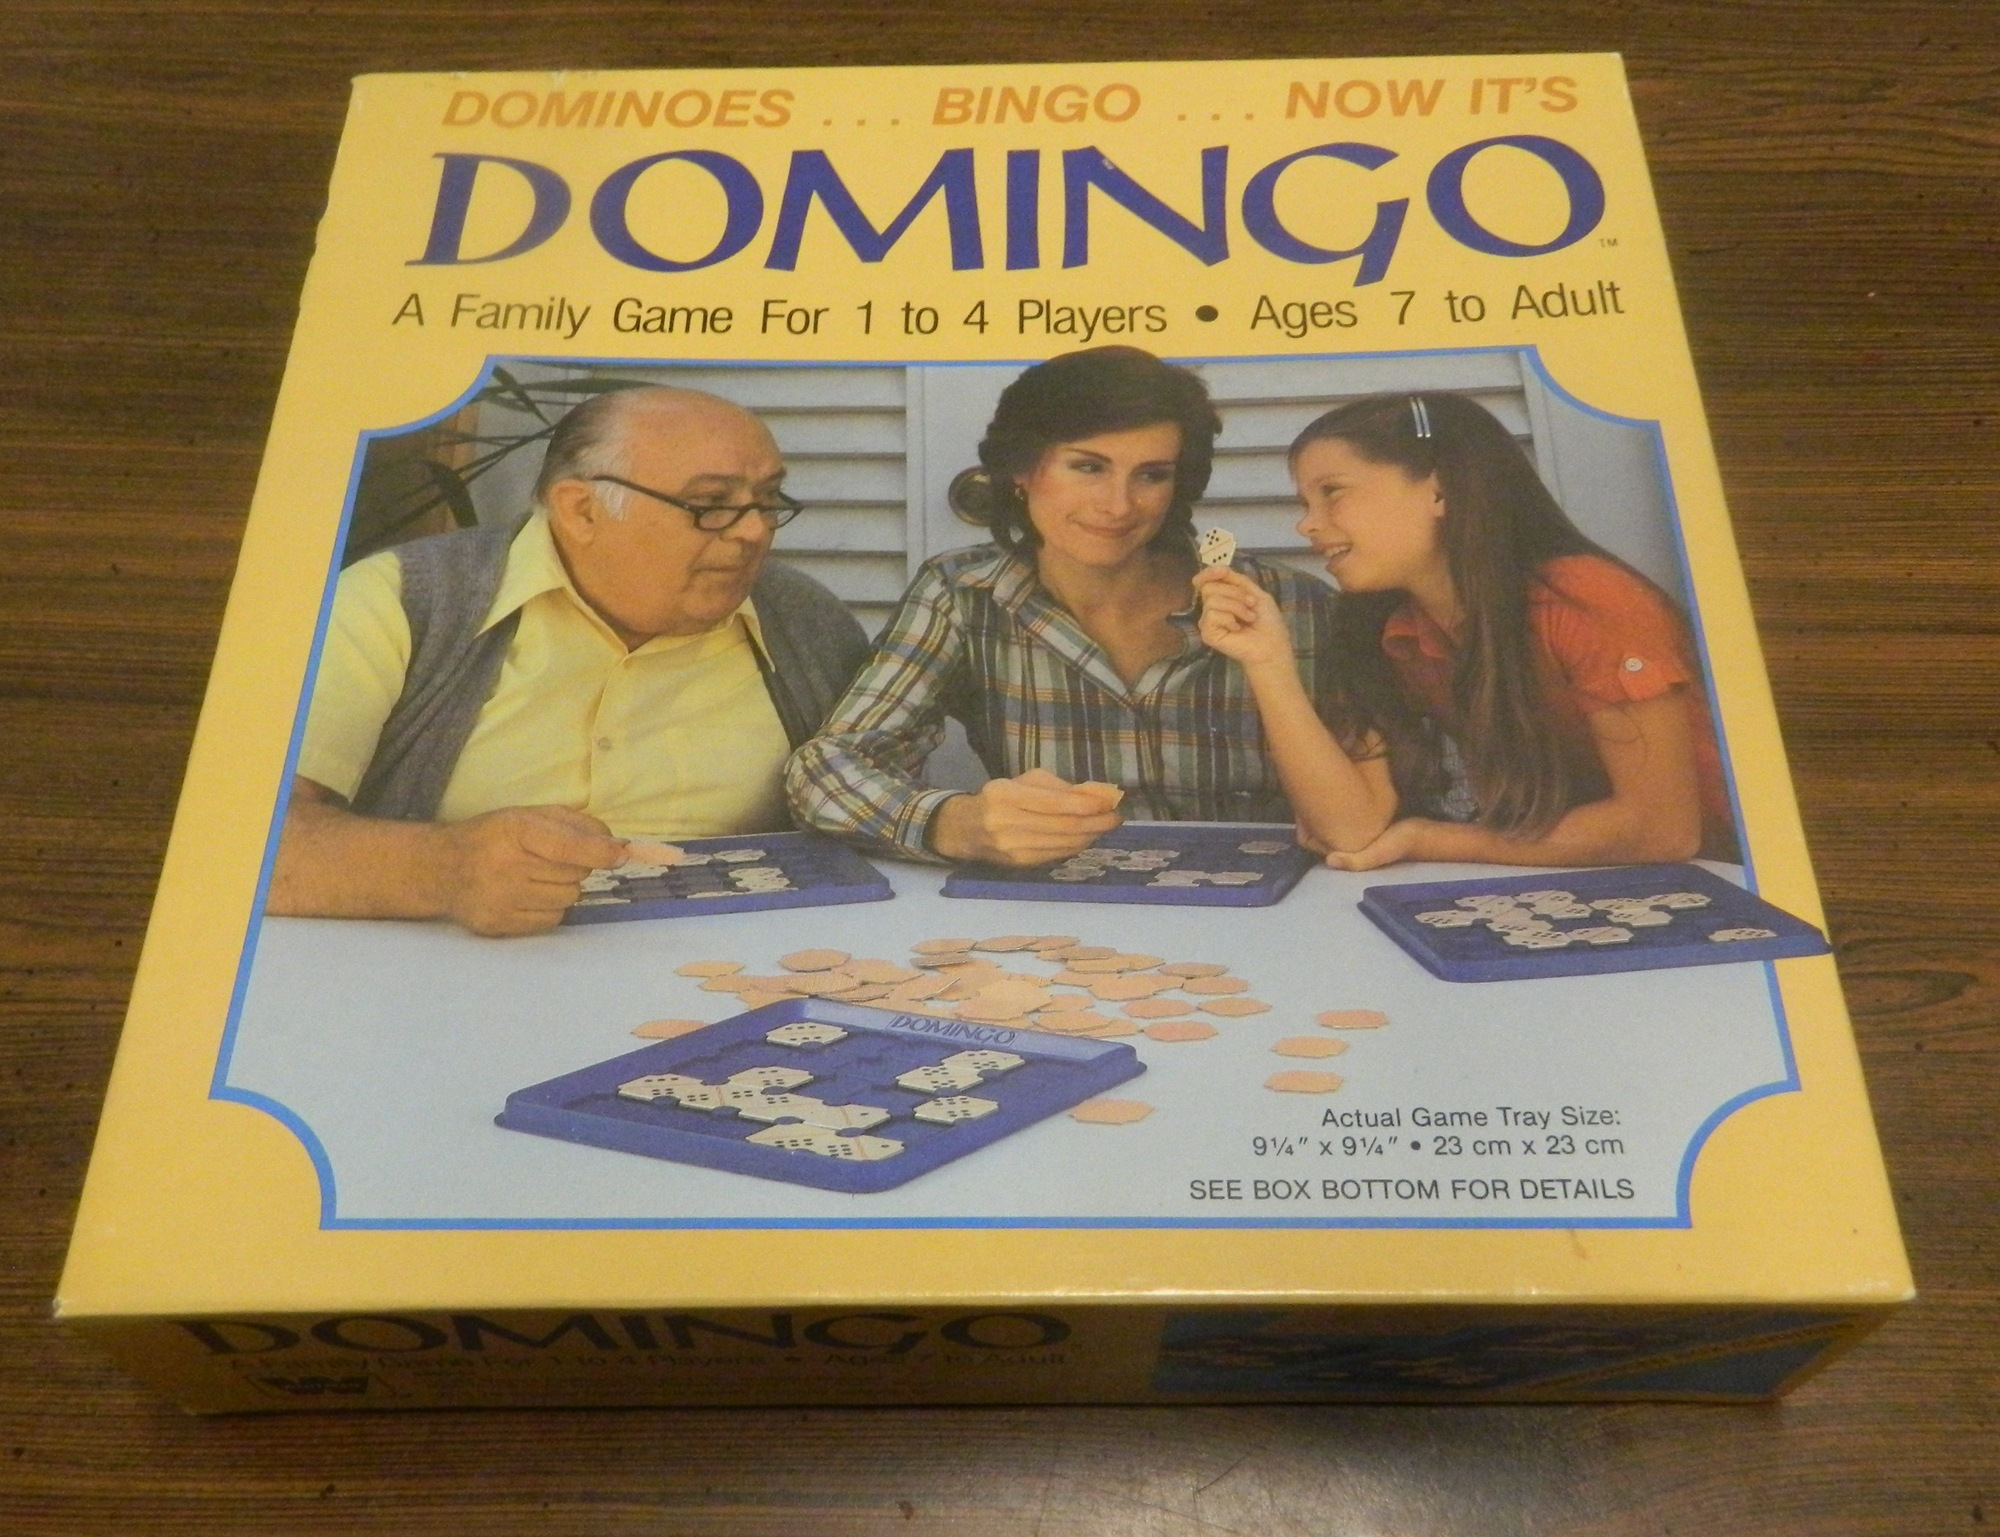 Box for Domingo